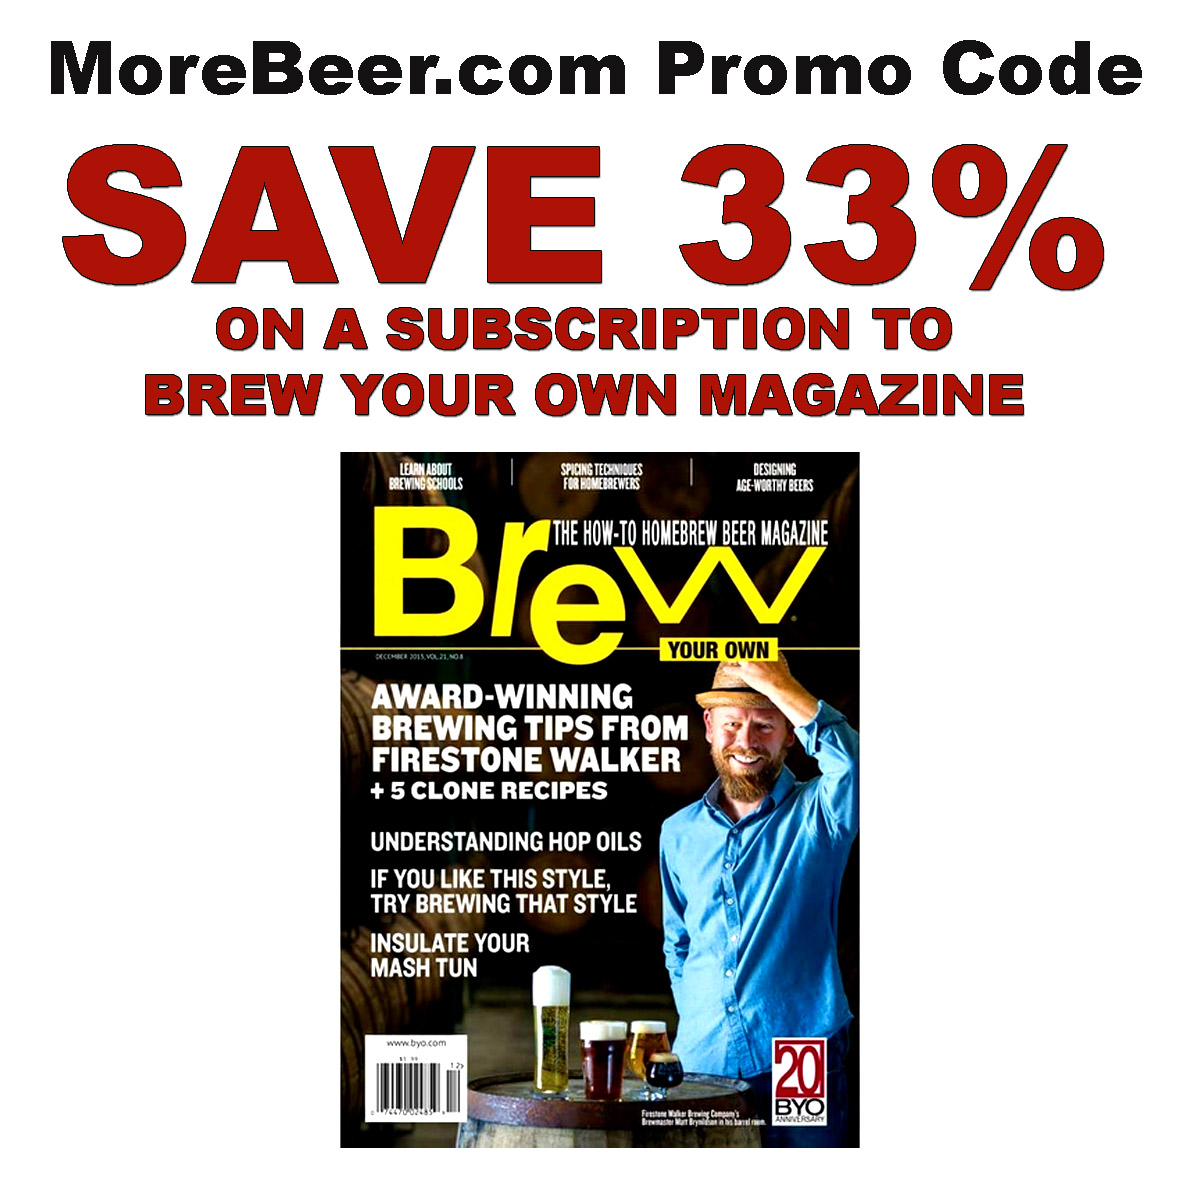 Forget Amazon Prime Day, act now and save 33% on Brew Your Own Magazine with the More Beer Home Brewing Promo Code Coupon Code